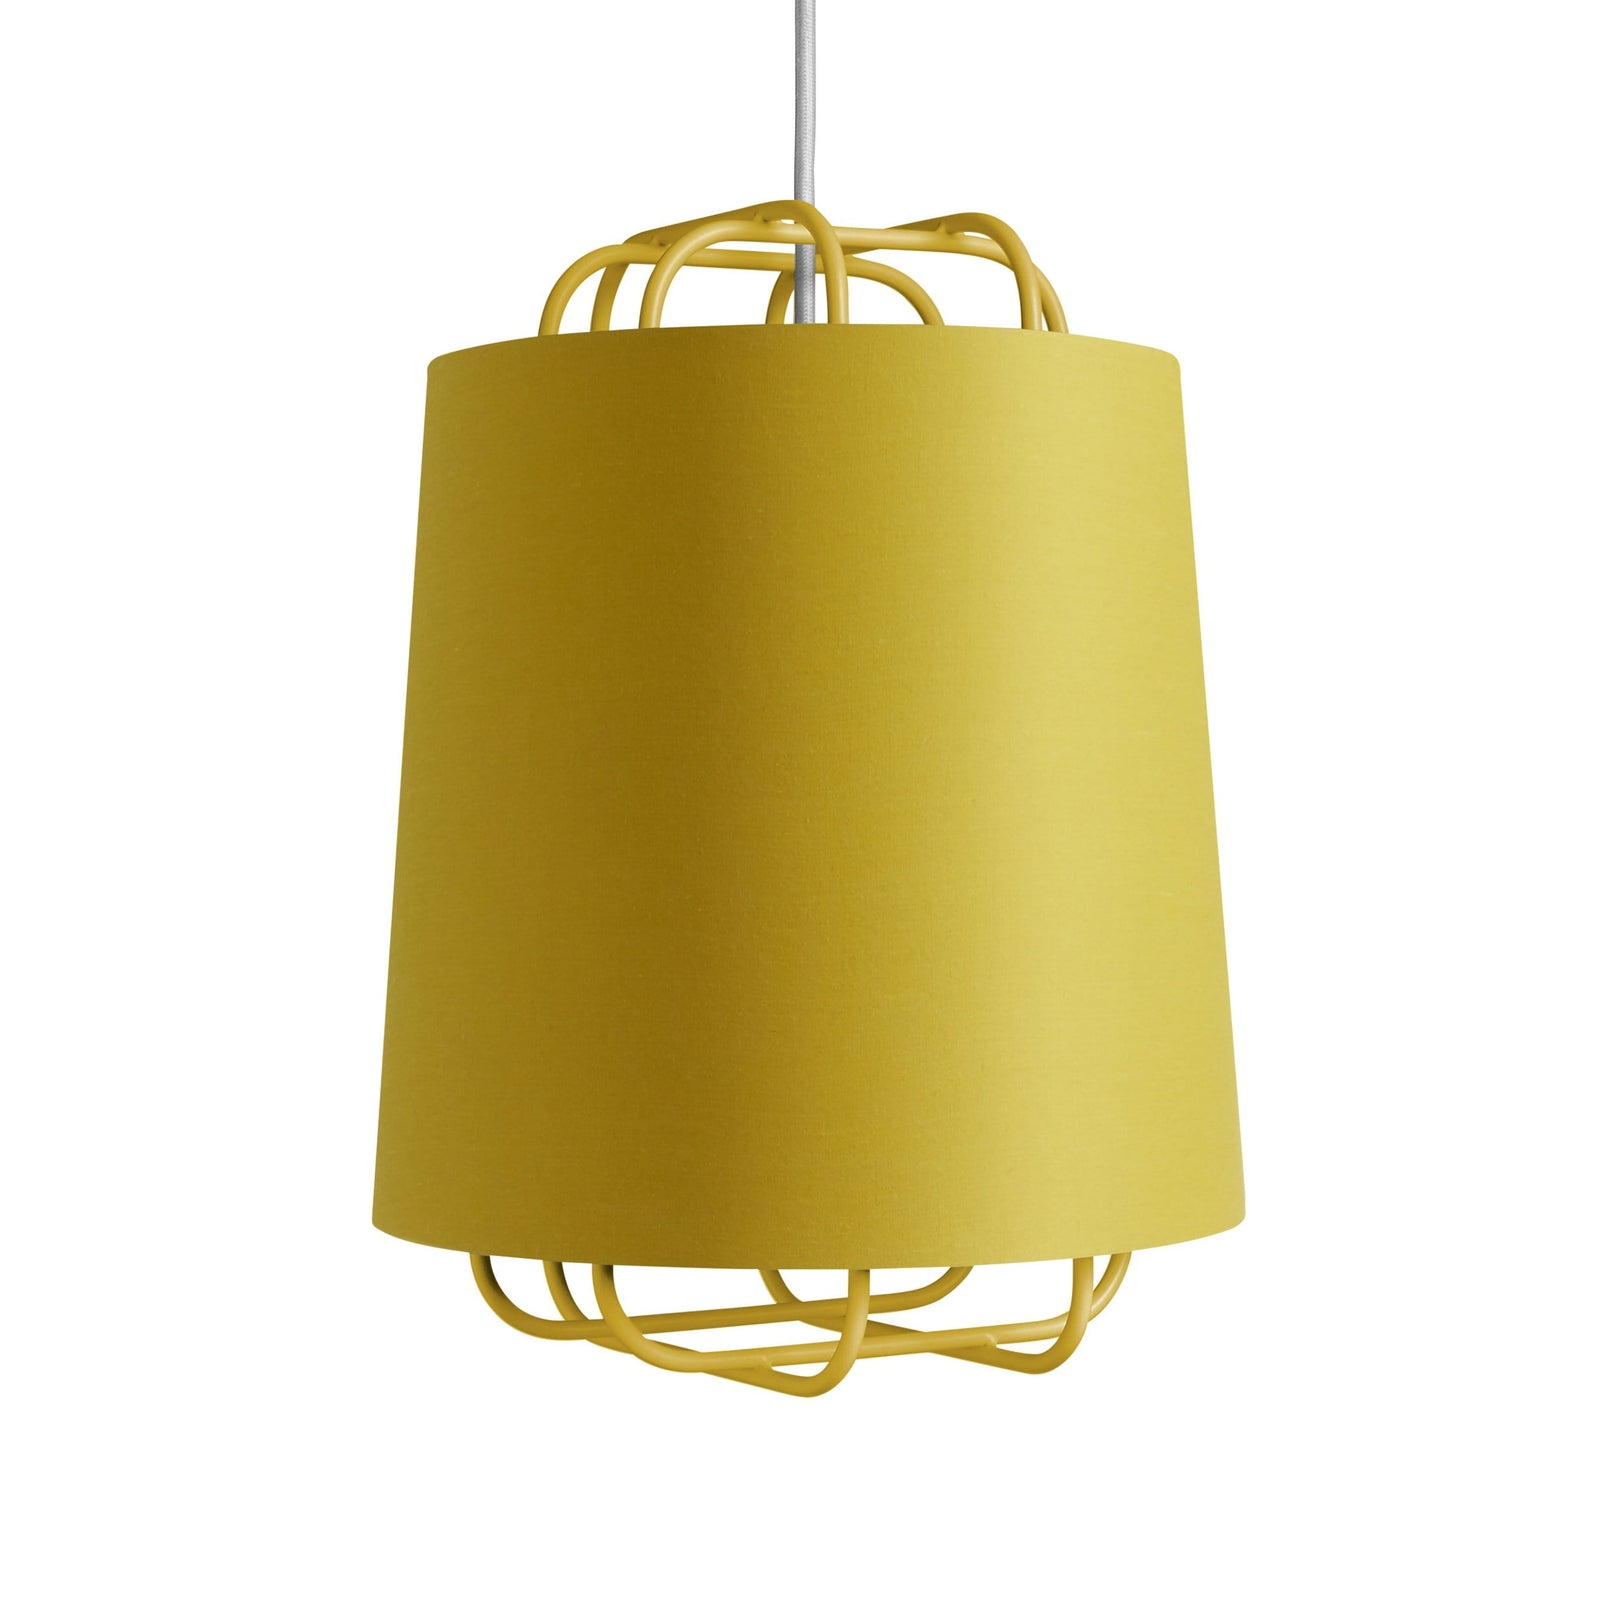 Blu Dot Lighting Ochre Perimeter Small Pendant Light